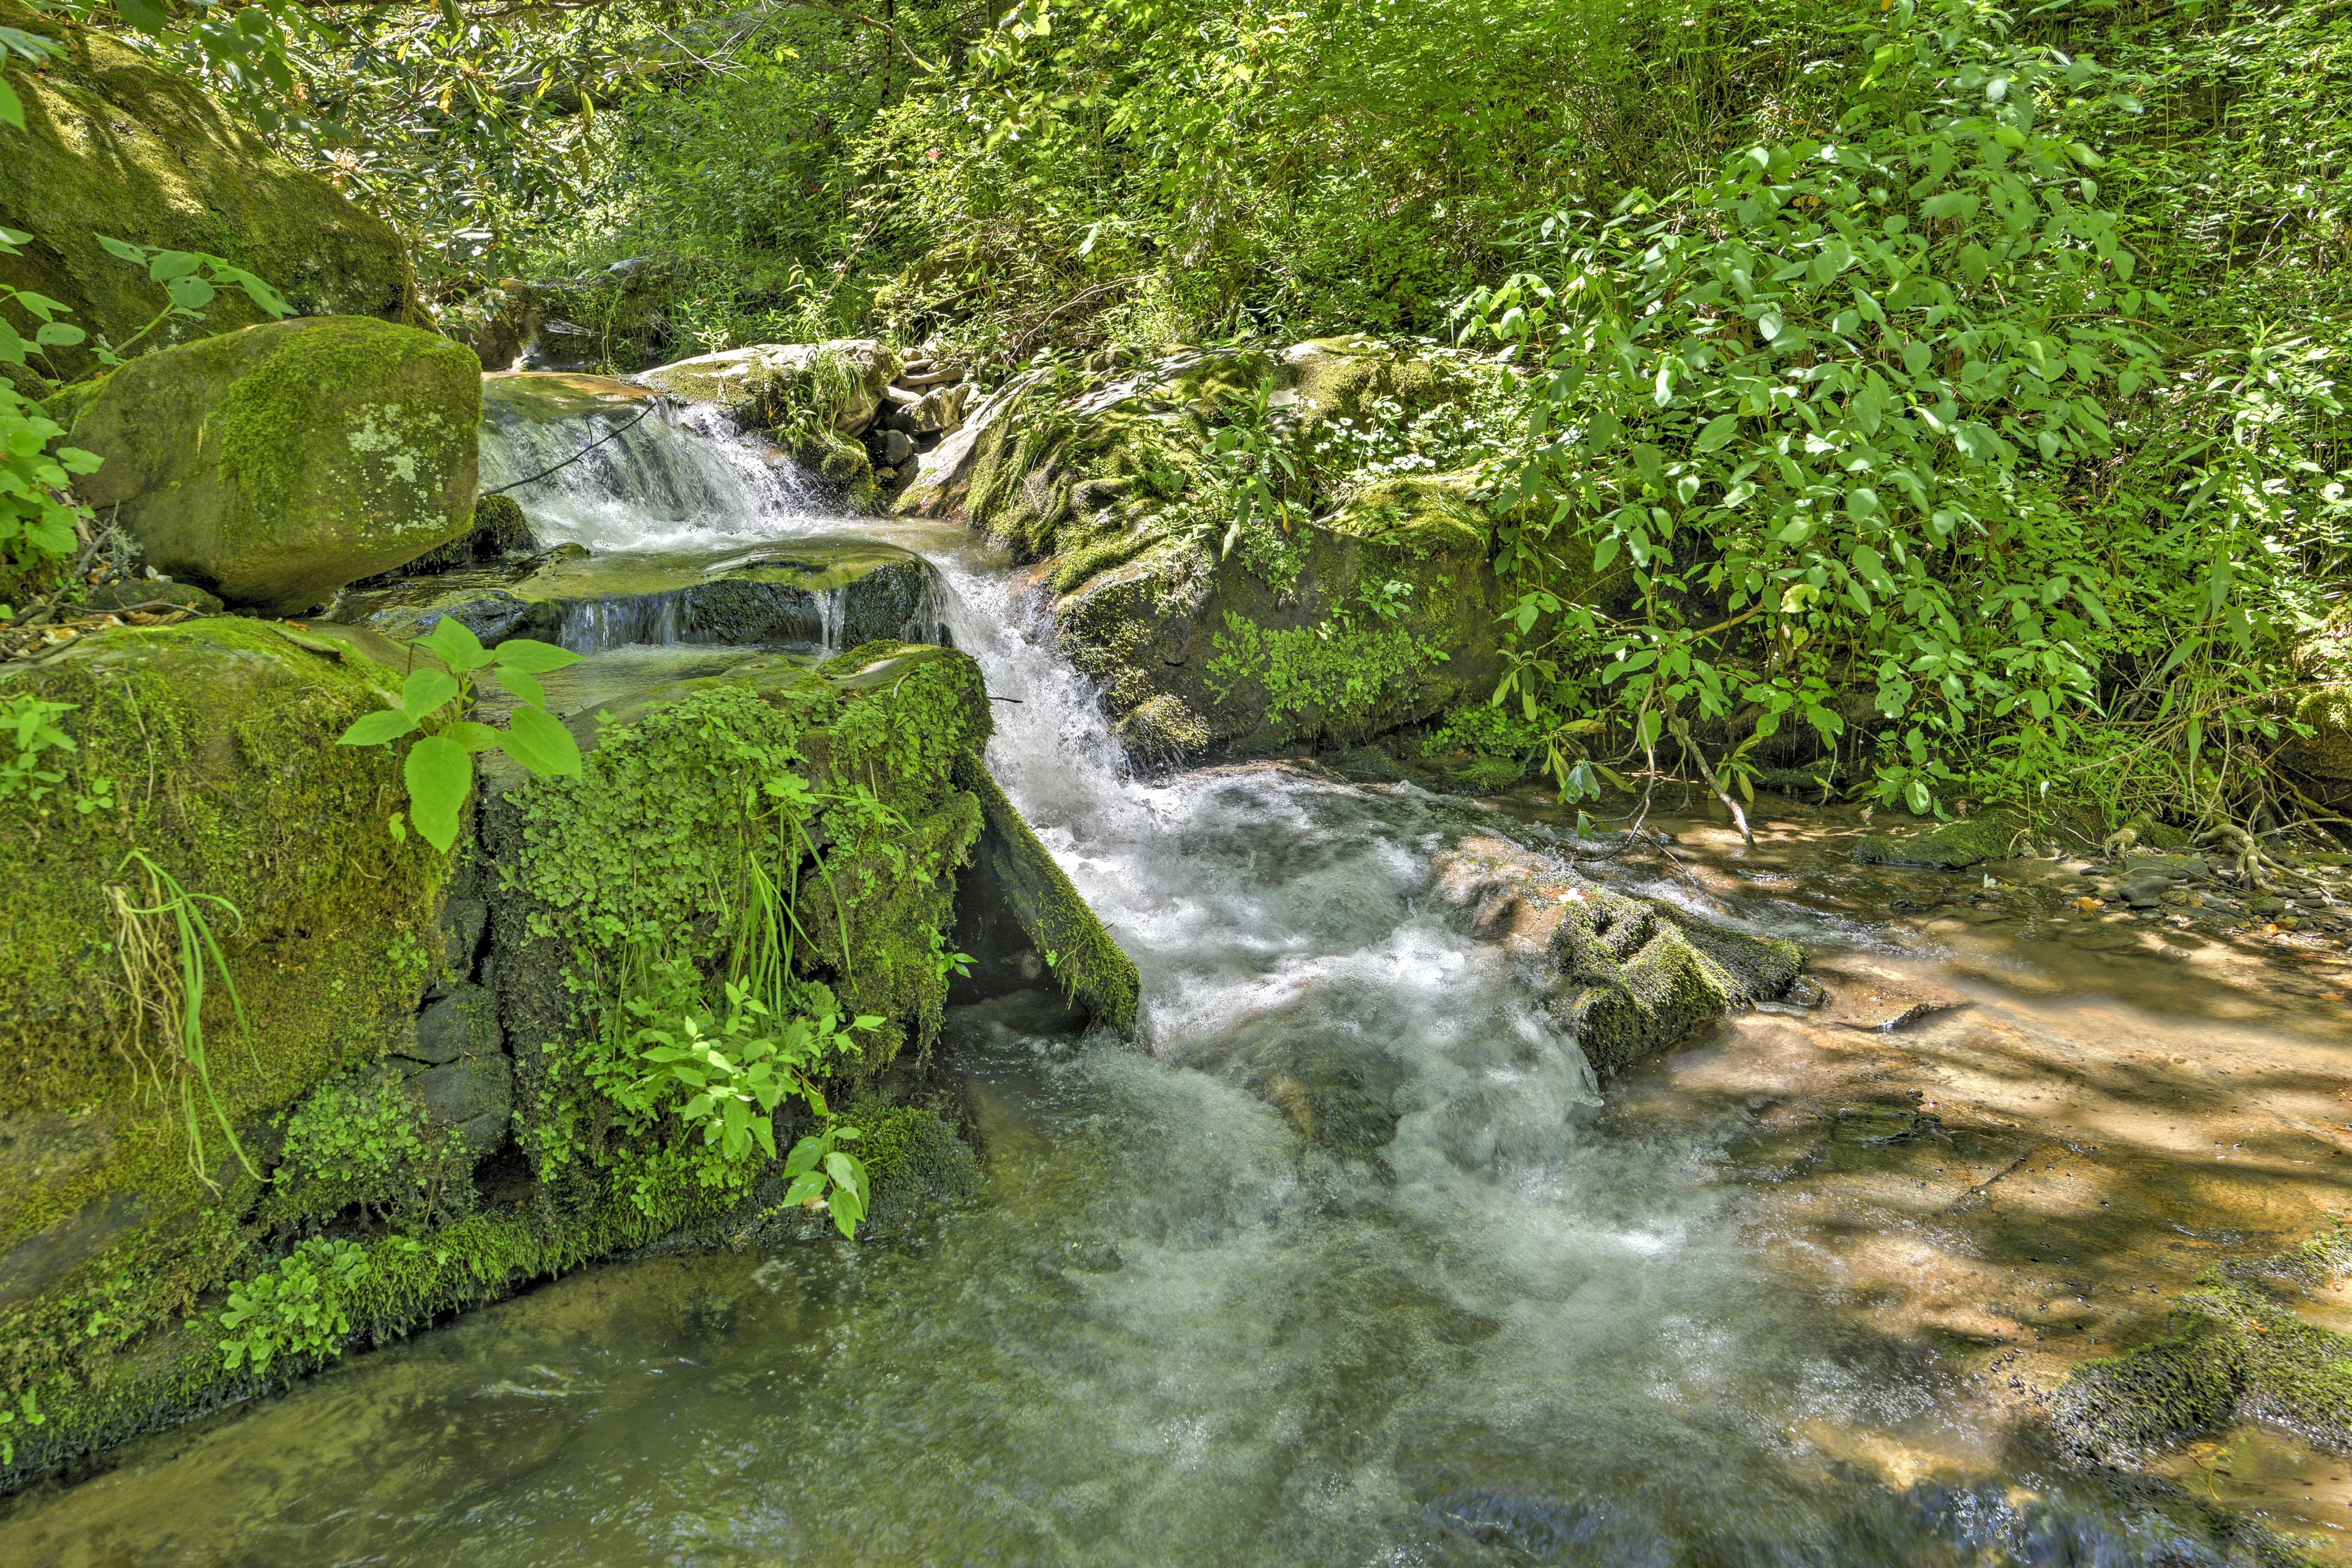 Take in the relaxing and soothing sounds of the waterfall.